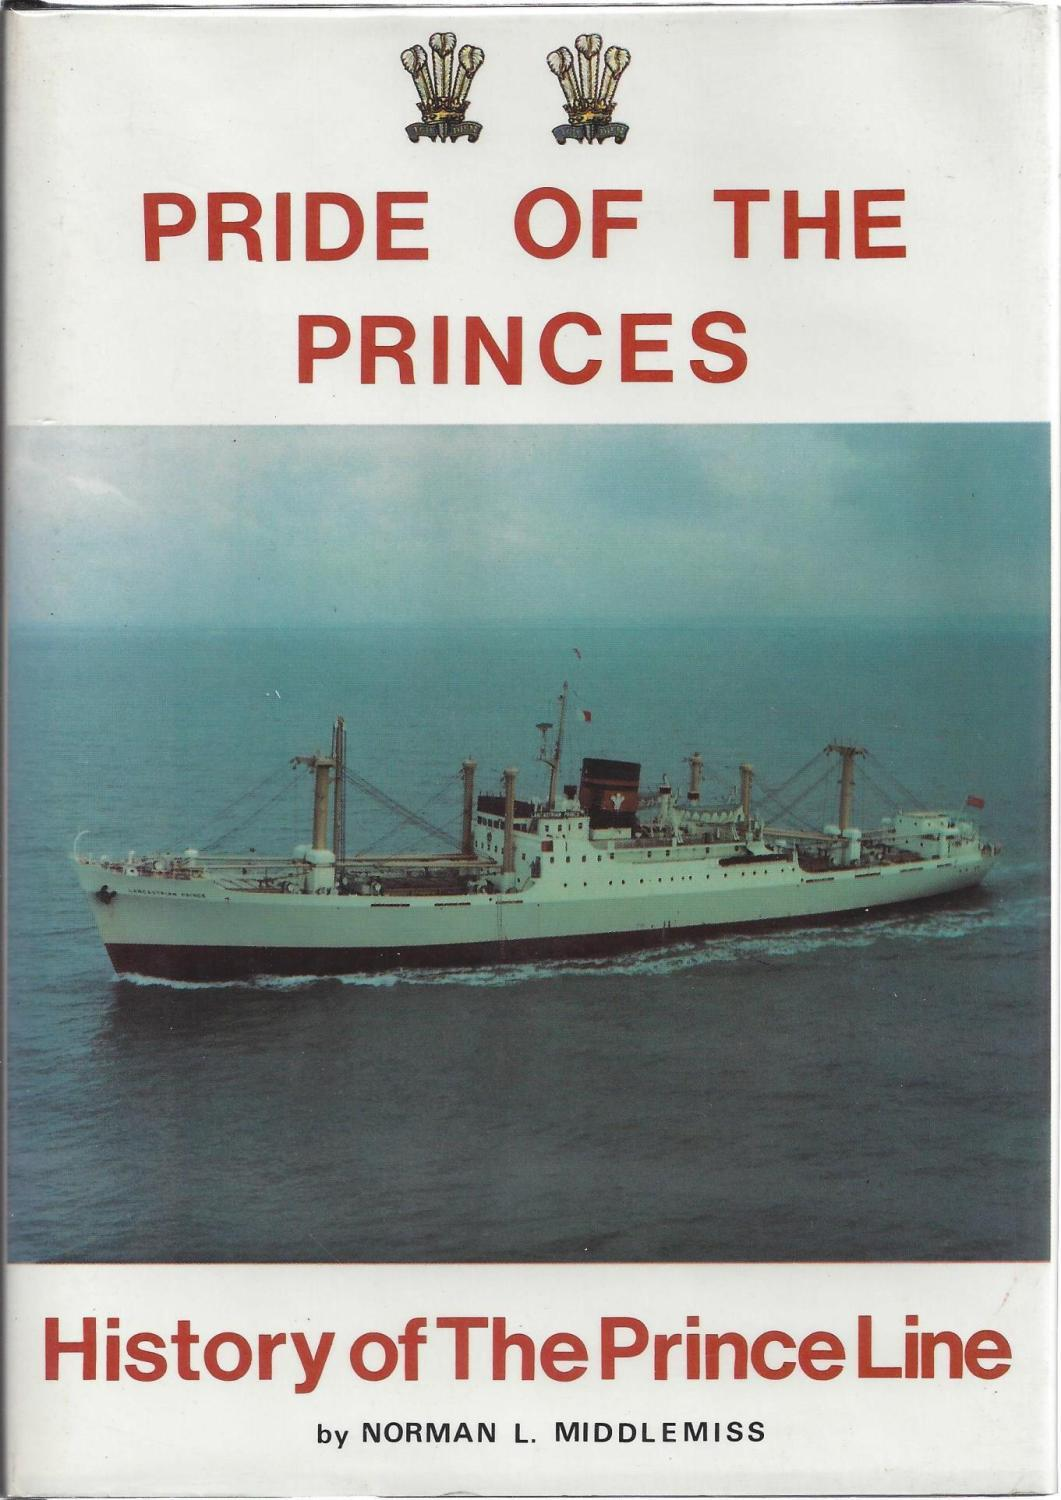 Pride of the Princes: History of the Prince Line Ltd., Middlemiss, N.L.